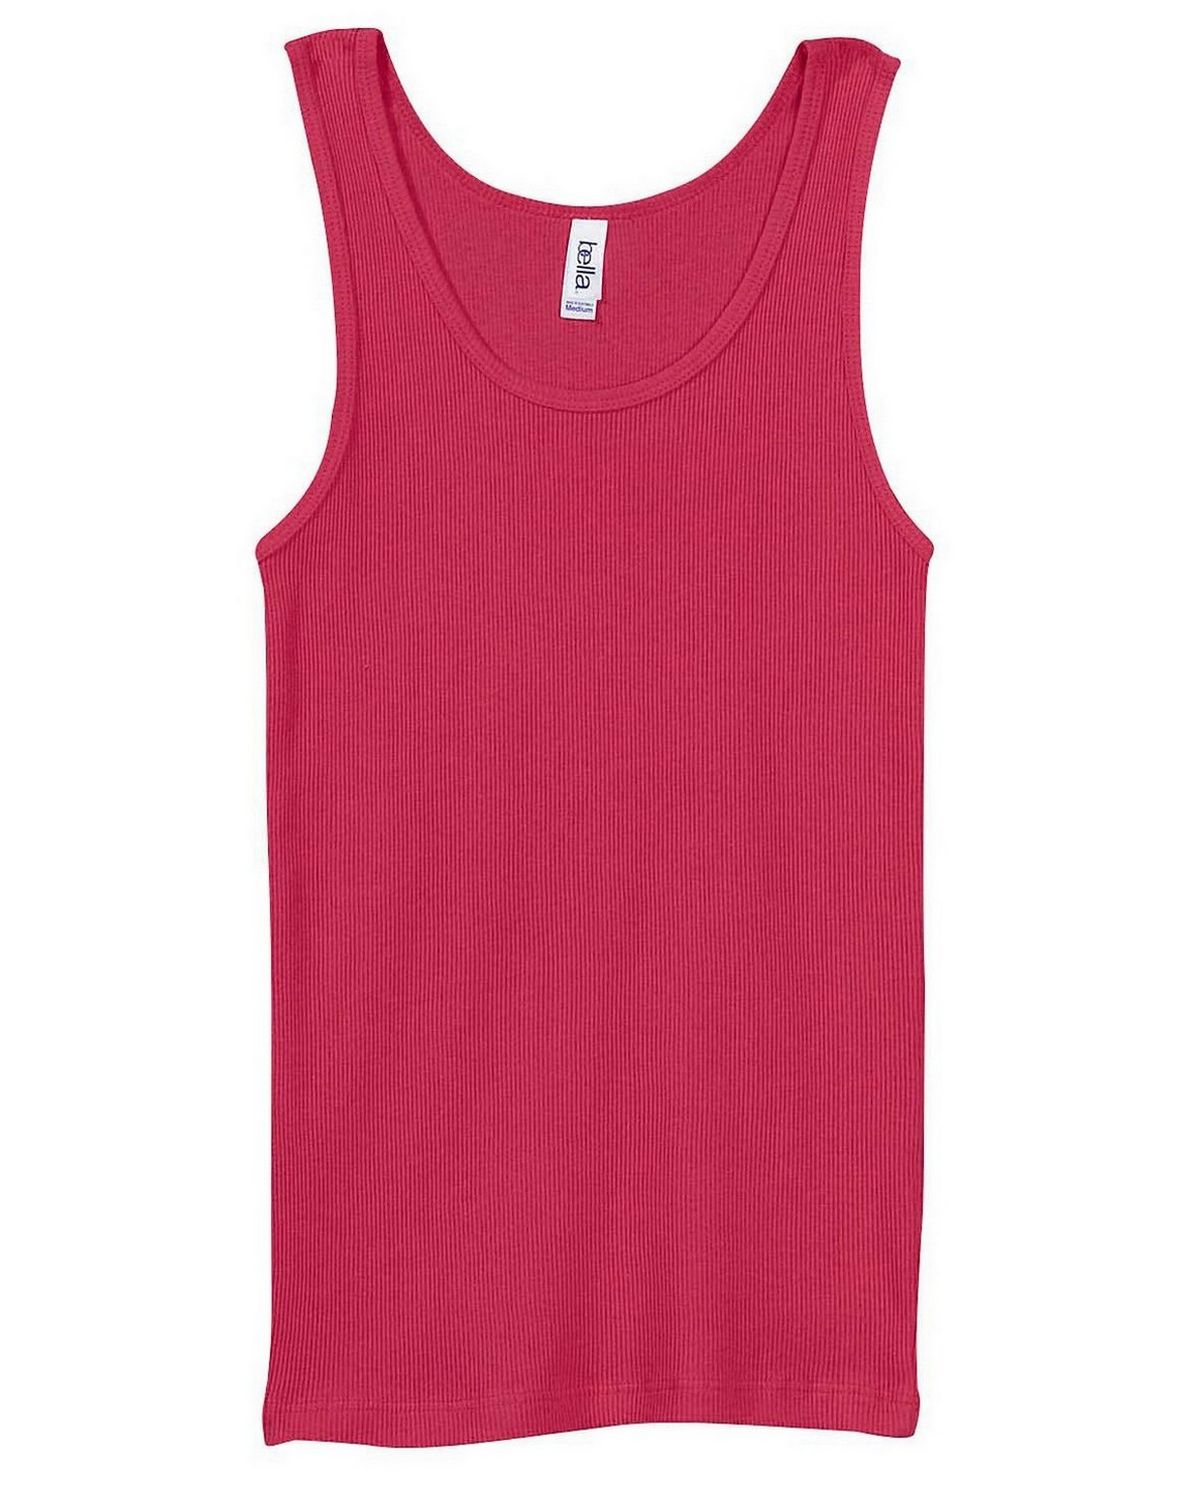 Bella + Canvas 4000 Ladies 2x1 Rib Tank - Raspberry - XL 4000